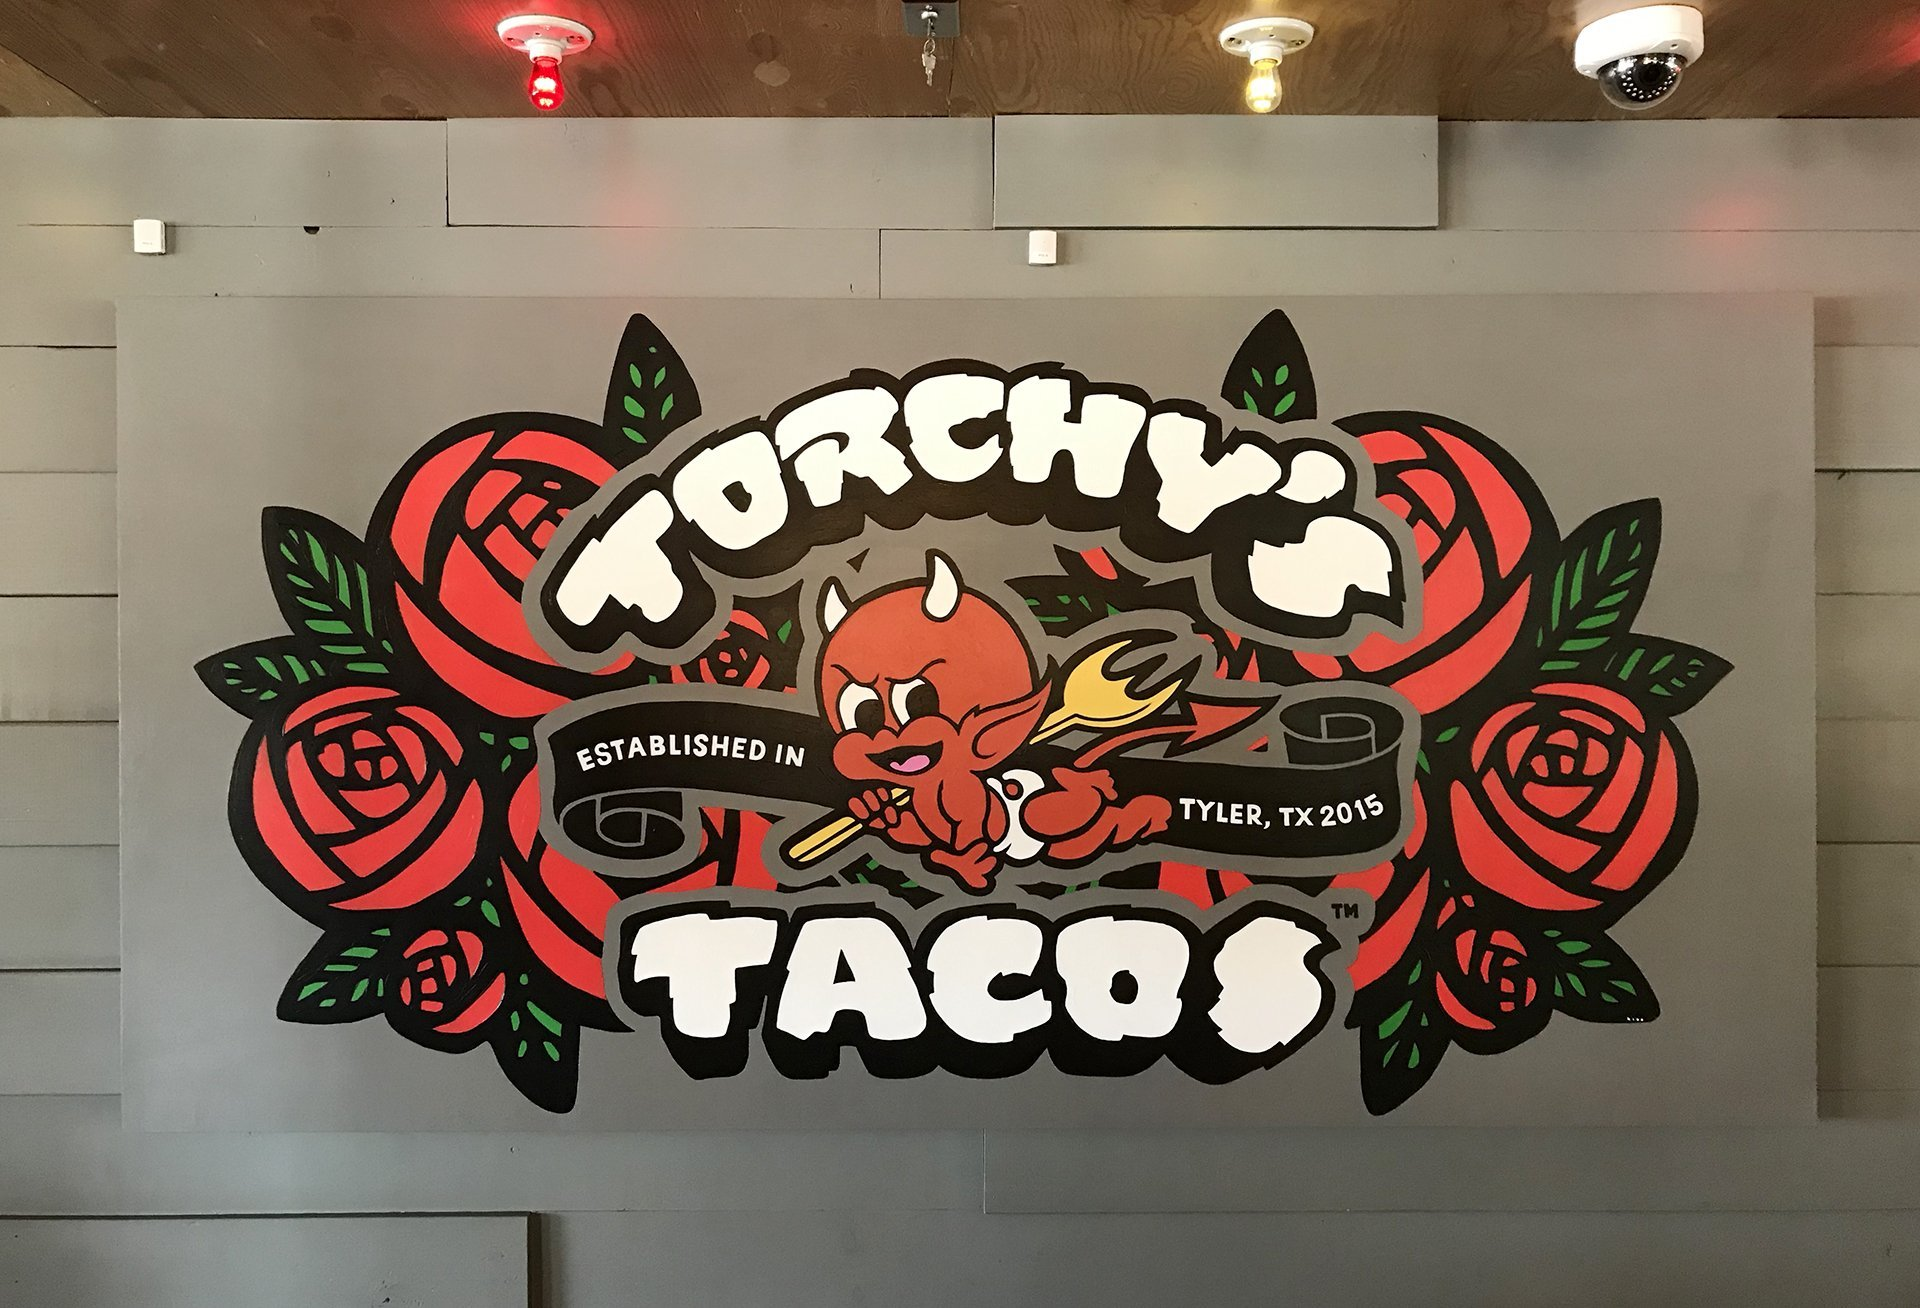 Torchy's Tacos painting